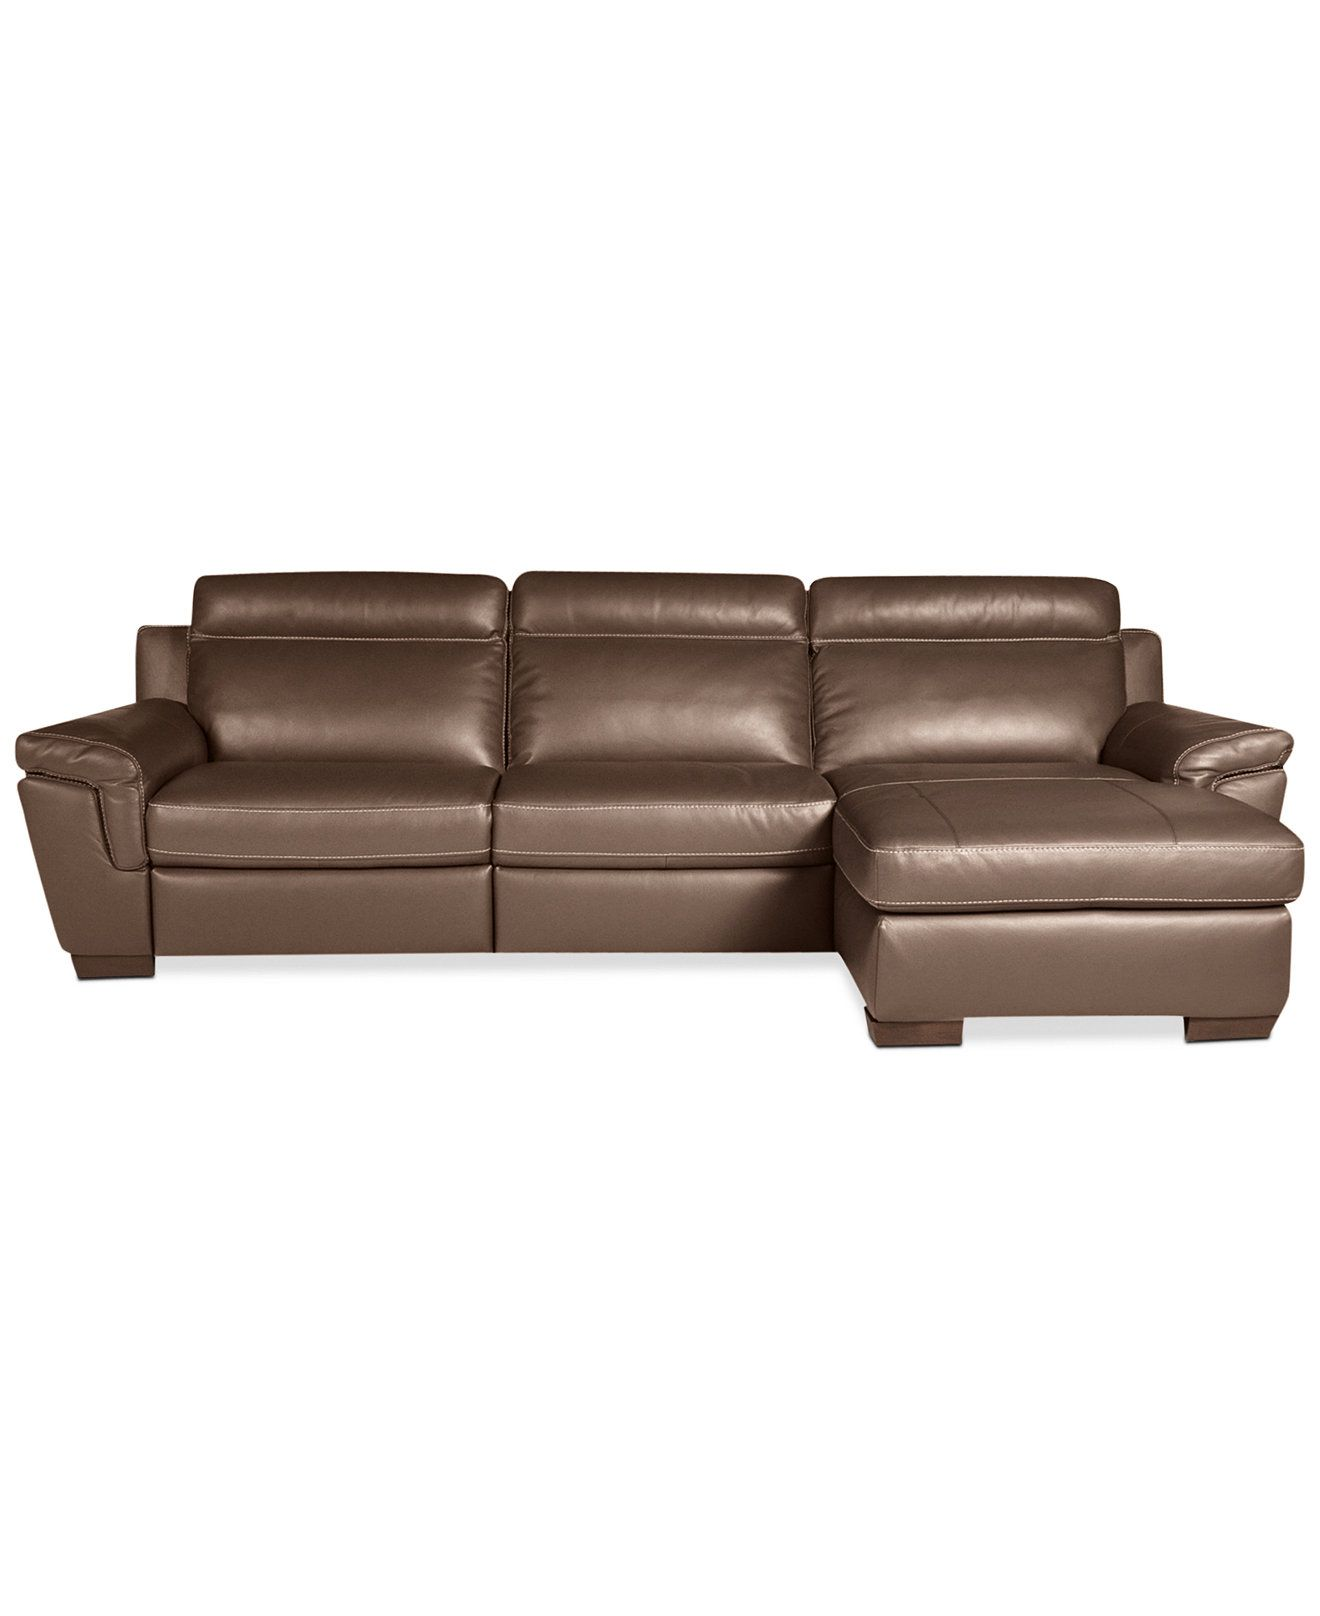 Julius 3-piece Leather Power Motion Chaise Sectional Sofa